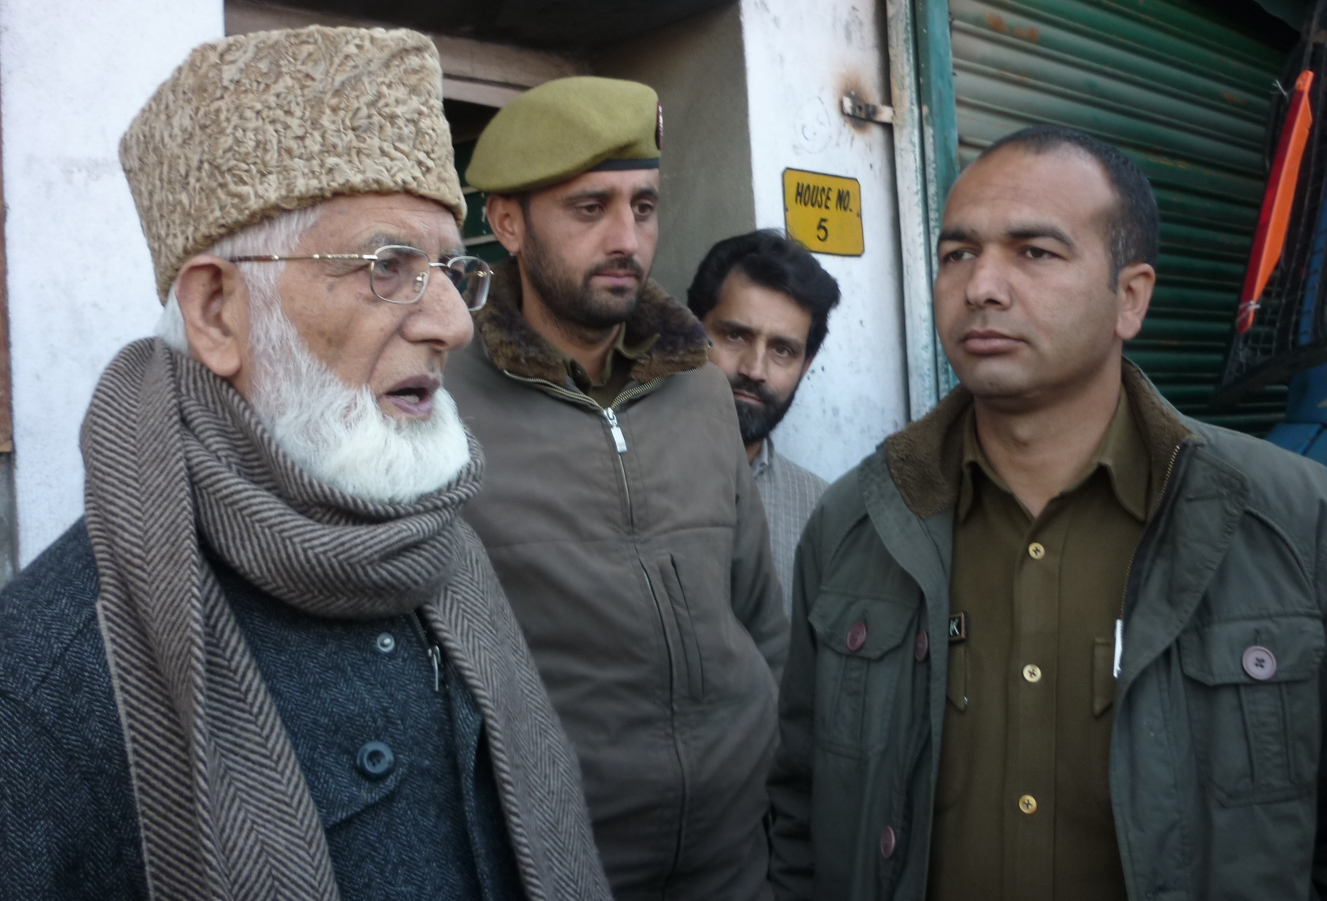 Chairman All Parties Hurriyat Conference Continues to be under illegal detention of occupational force , The ailing and aged Leader is not allowed to perform his religious duties. he was shifted to Humhama police station.